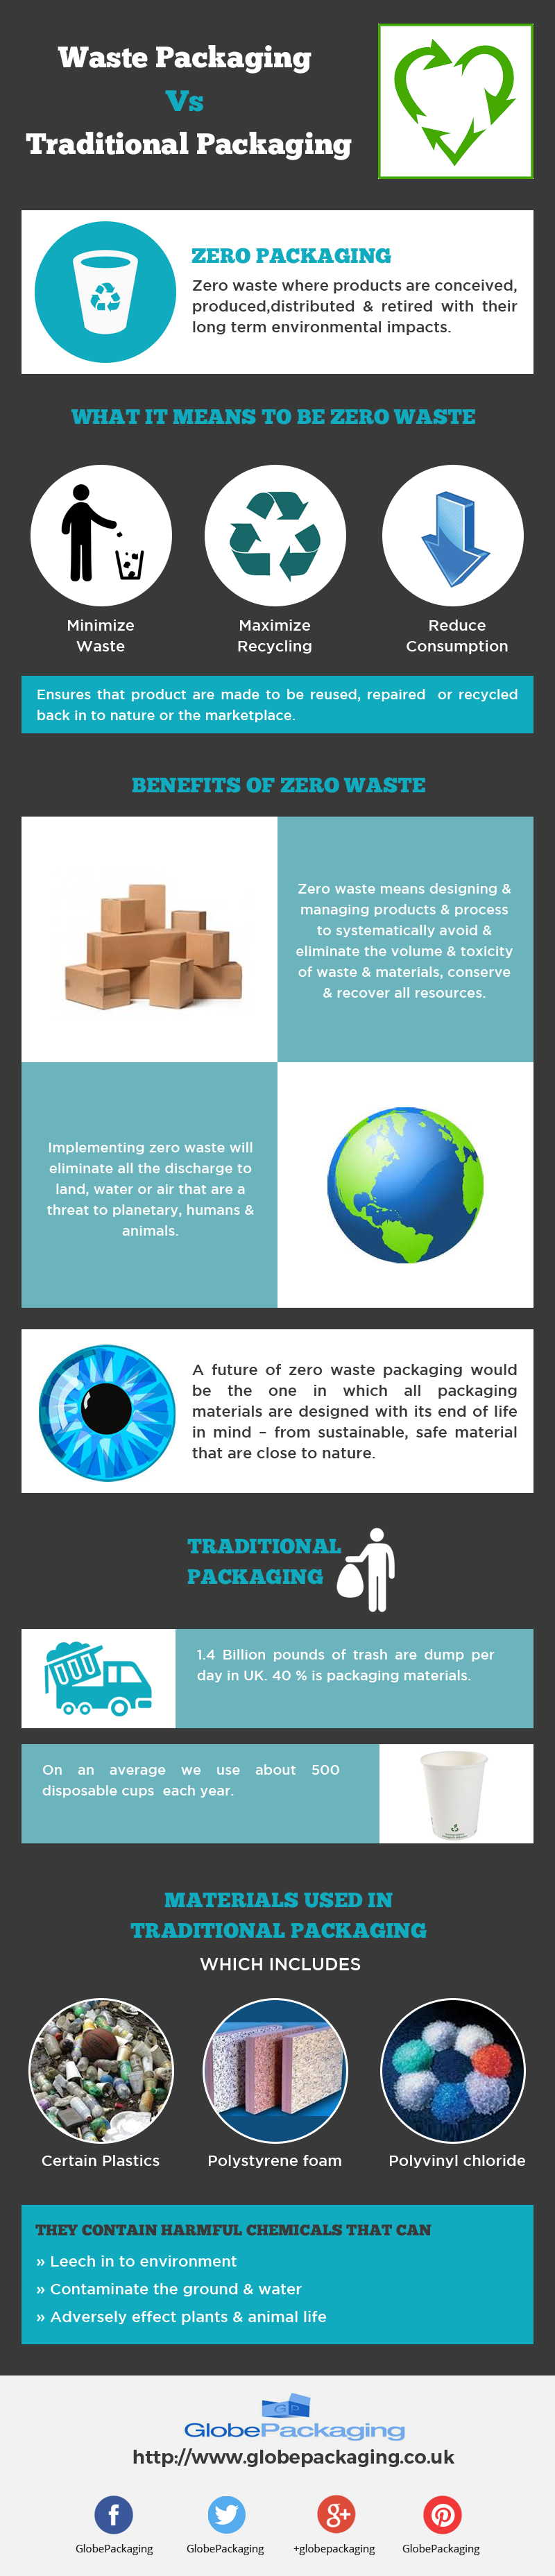 Waste Packaging Vs Traditional Packaging [Infographic]